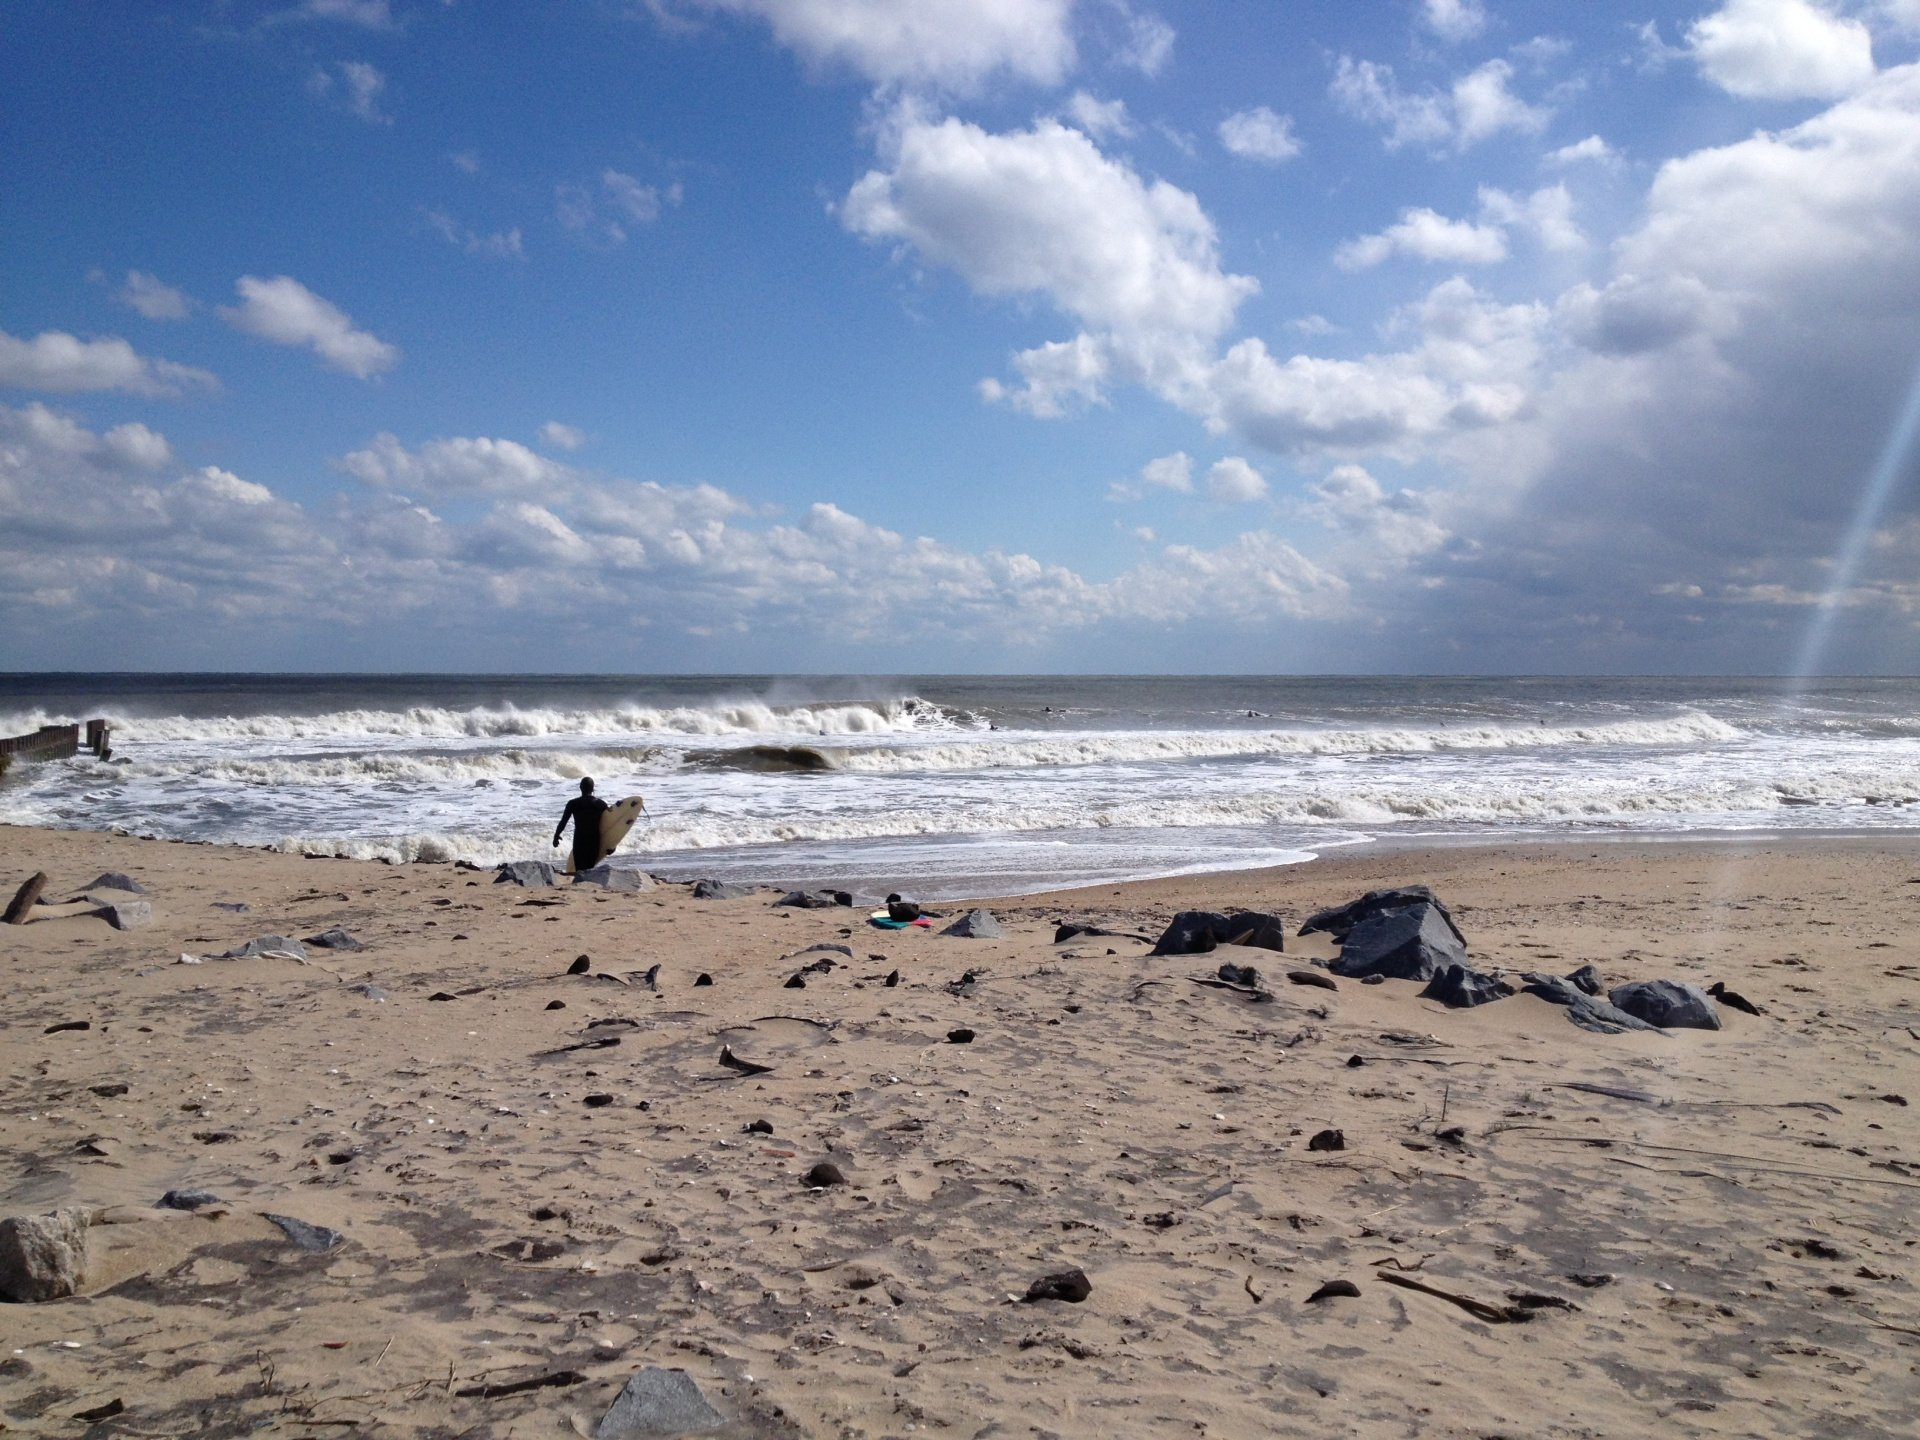 user72782's photo of Cape Hatteras